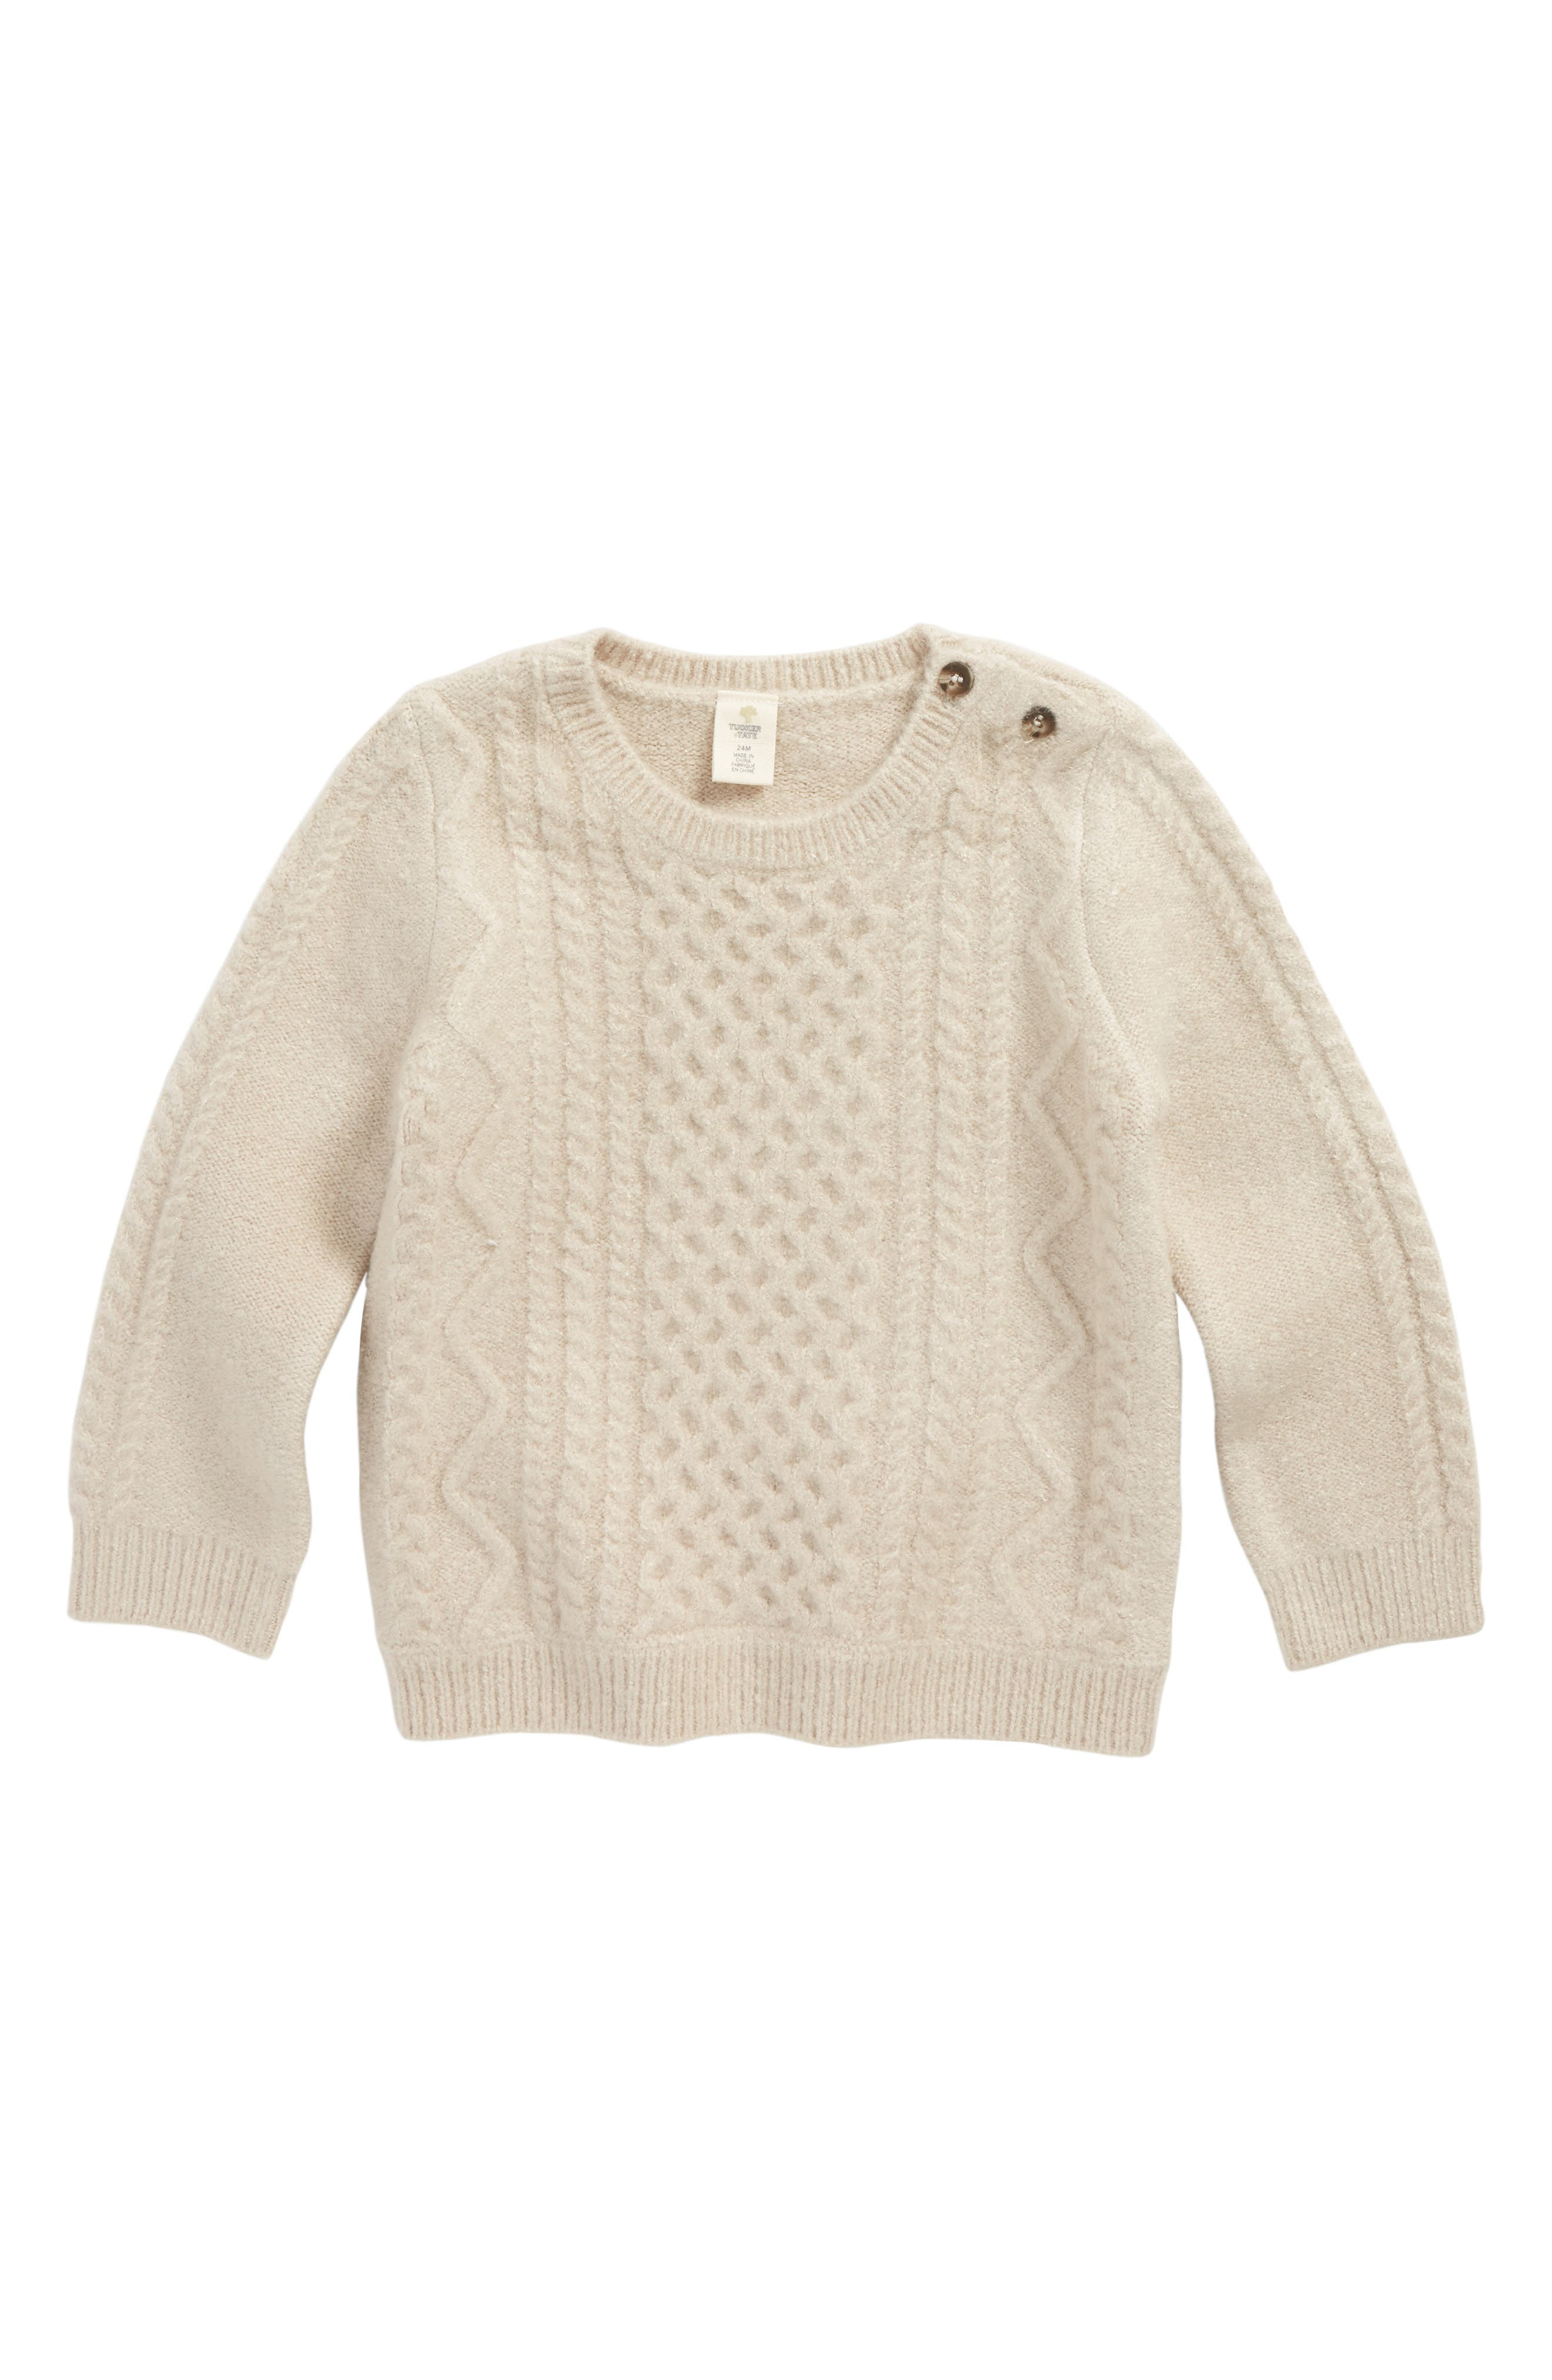 Tucker + Tate Cable Sweater (Baby)